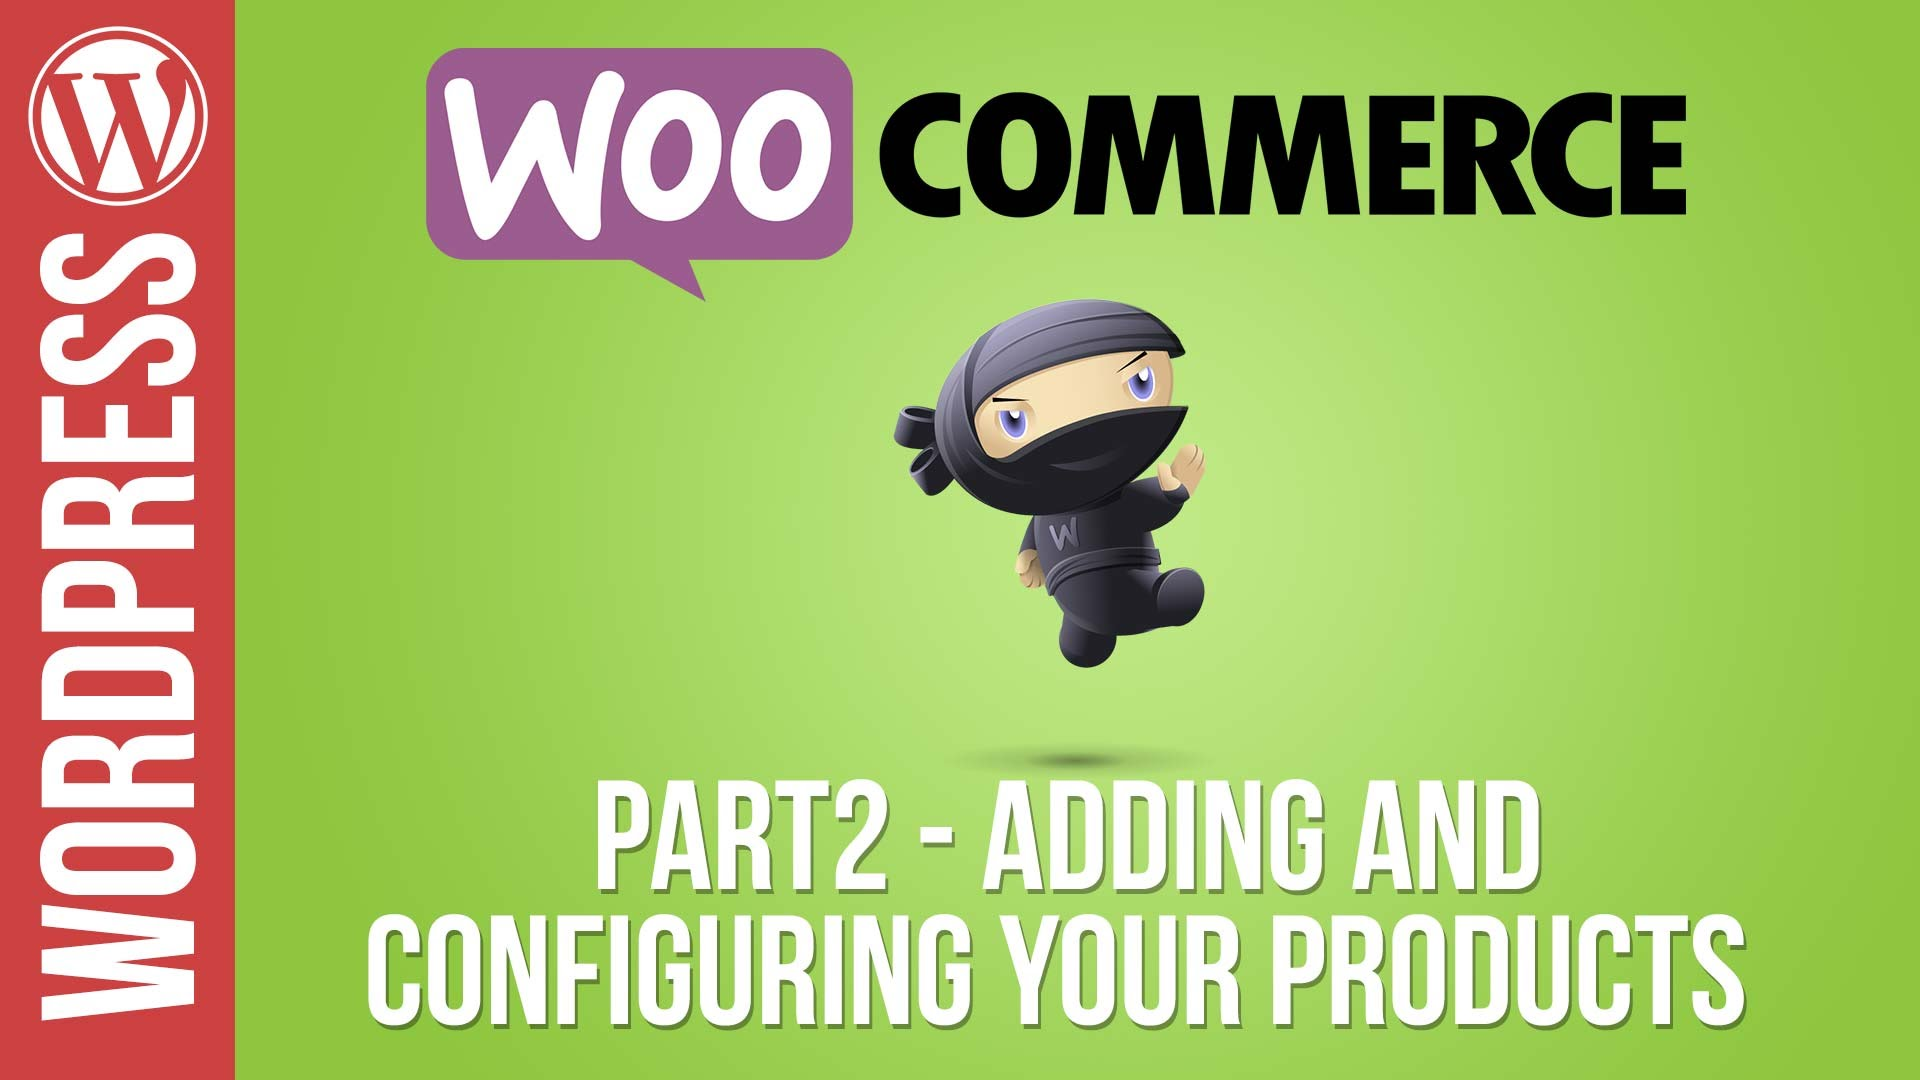 Woocommerce Tutorial Part 2 – Adding & Configuring Products